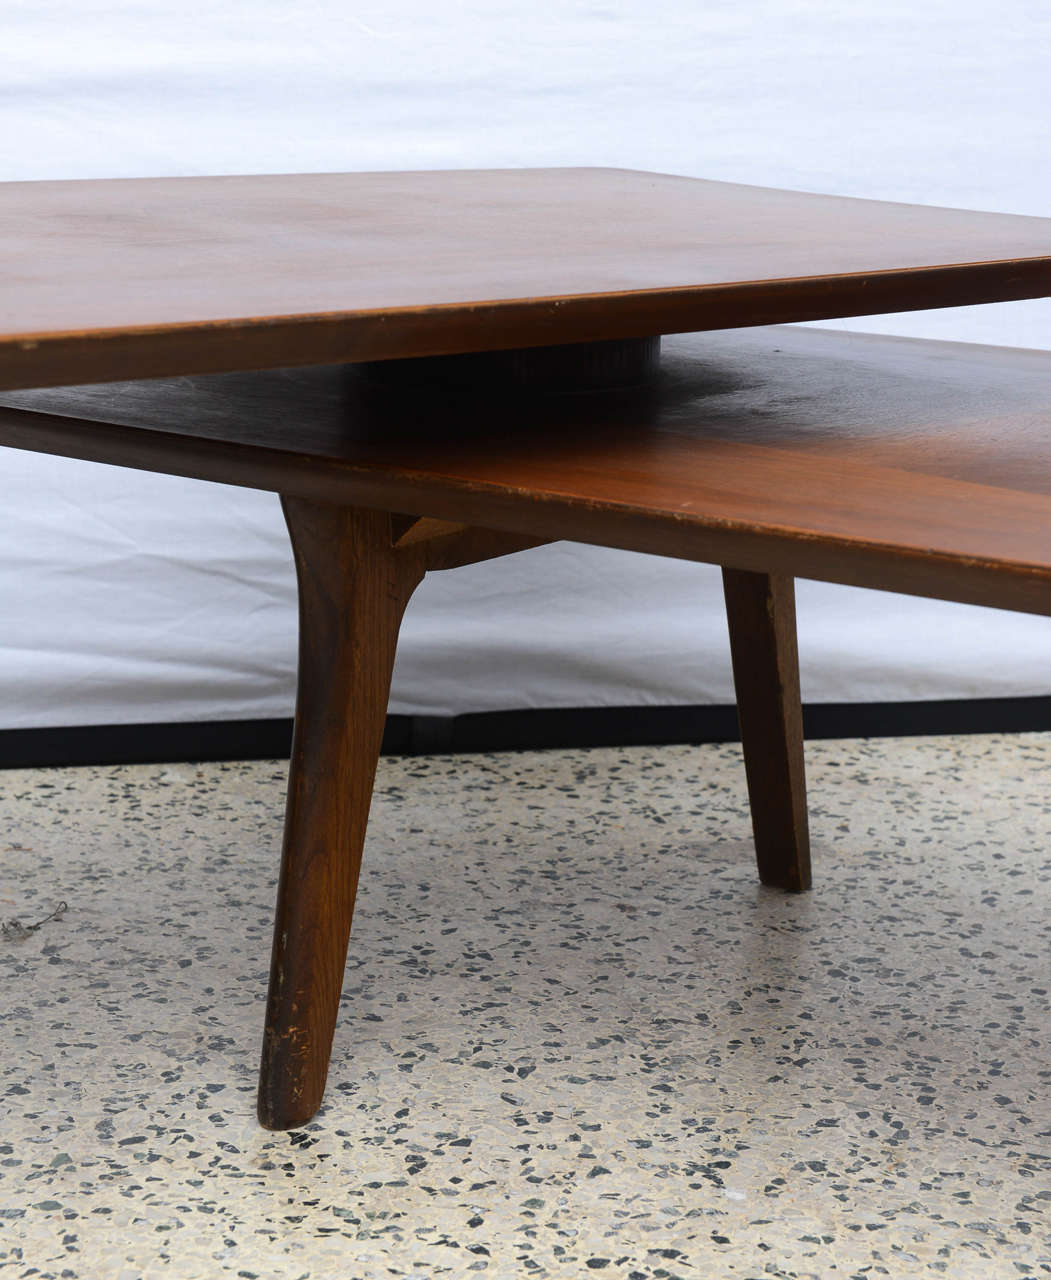 Small Modern Coffee Table 1960s For Sale At 1stdibs: Pivot Or Swivel Mid-Century Modern Coffee Table, 1960s